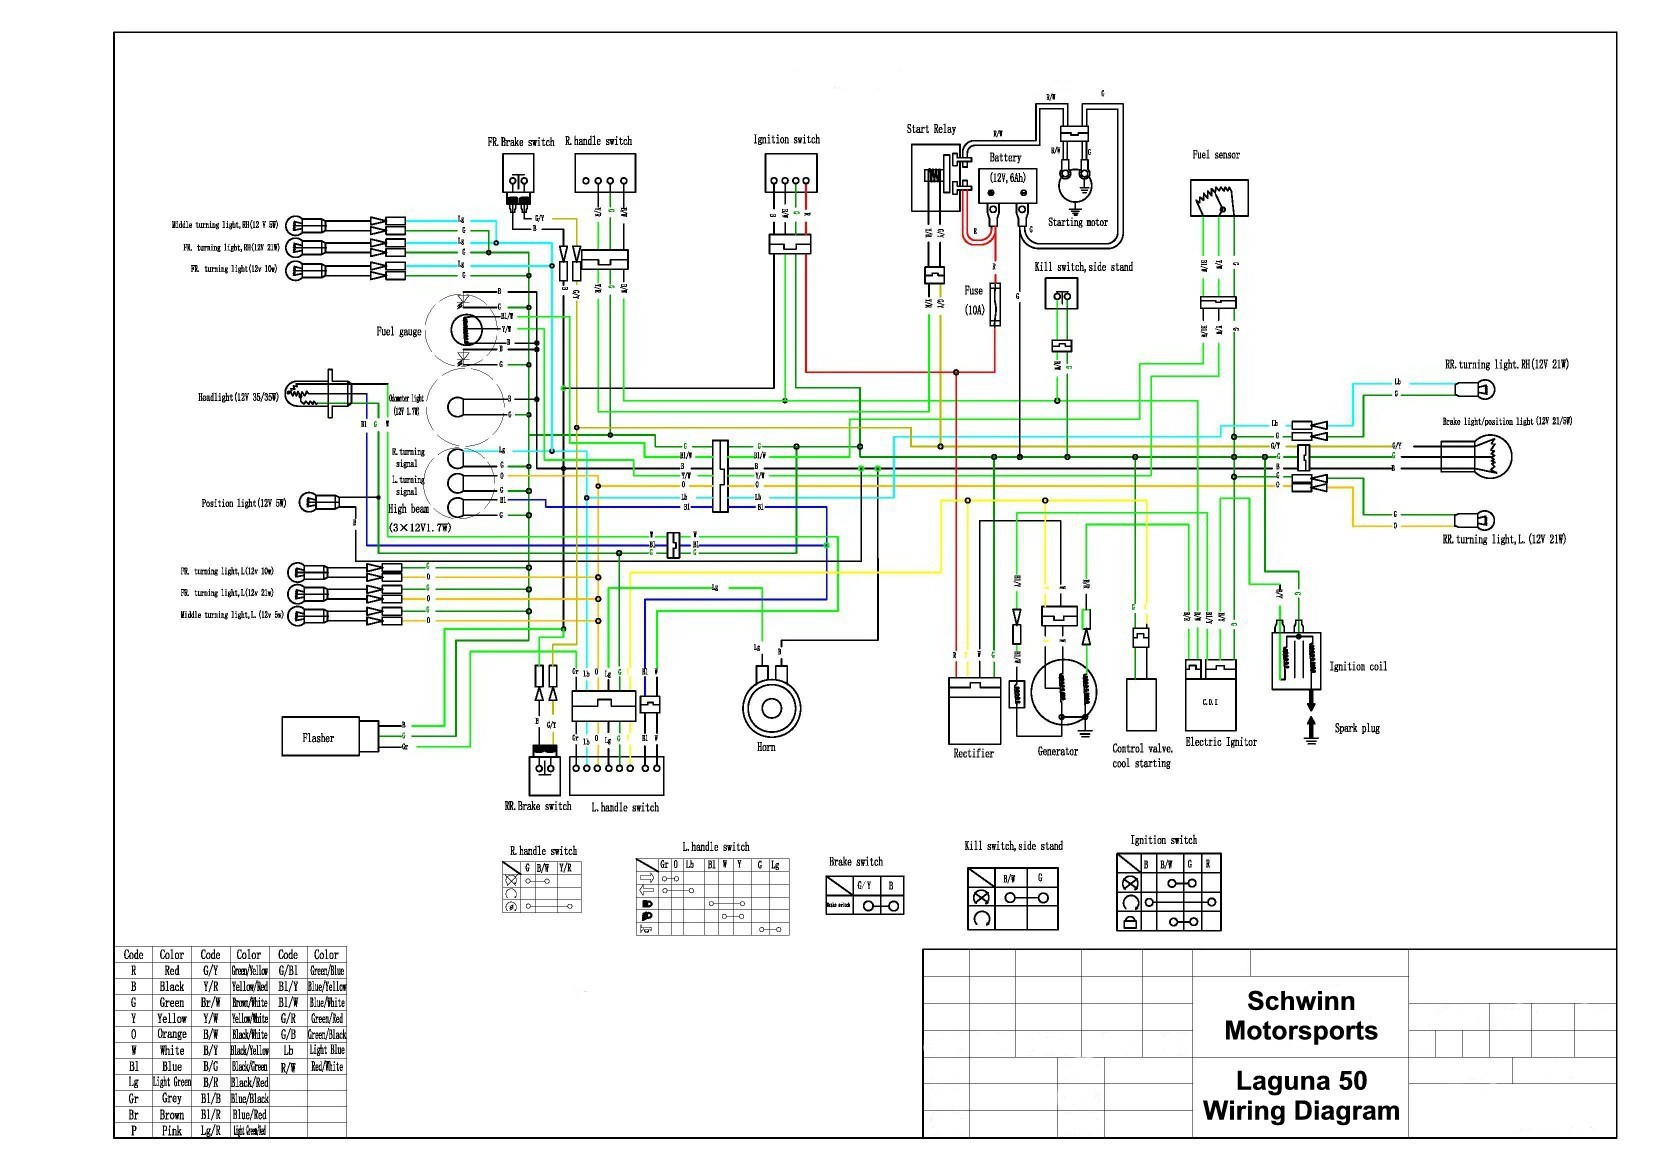 Gy6 Ignition Wiring Diagram Electrical Schematics Honda Ruckus Switch 150cc Awesome Image Harness 150 Cc Taotao Won T